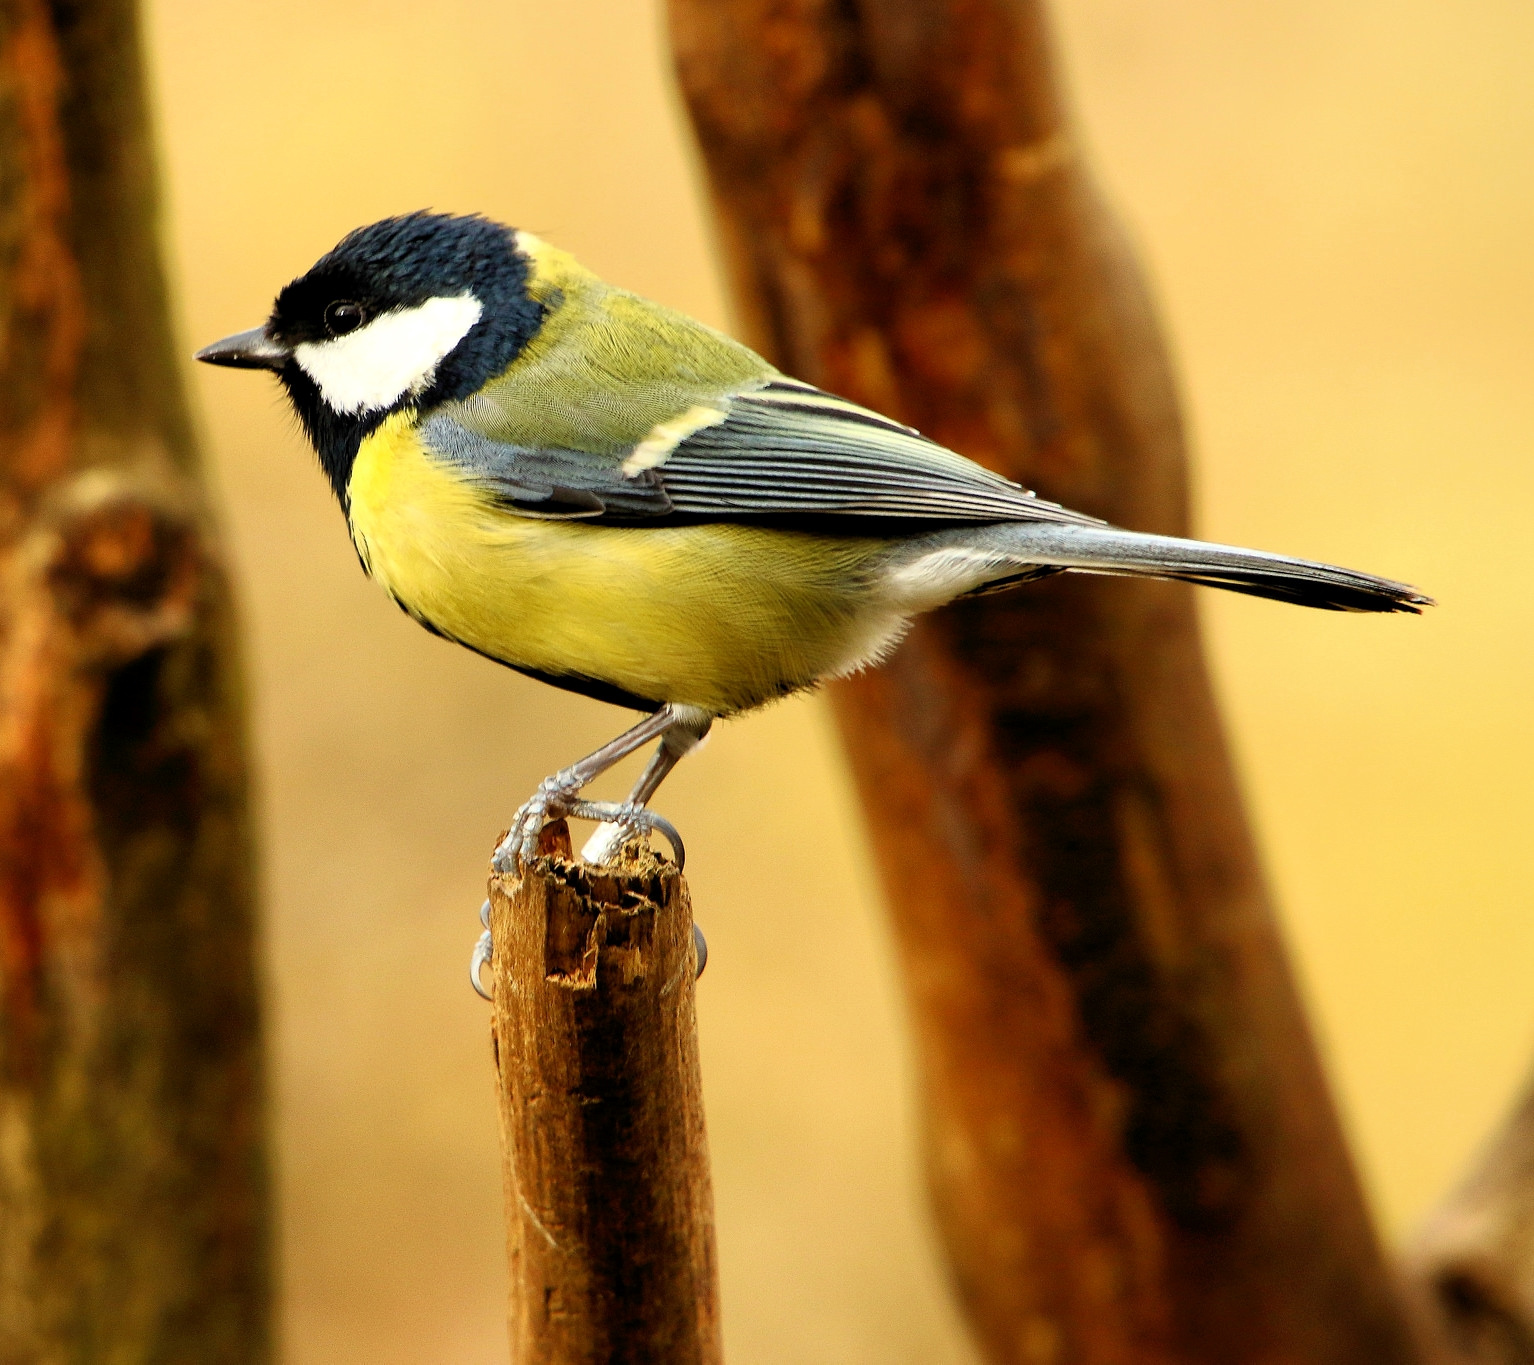 Great Tit. Credit Airwolfhound